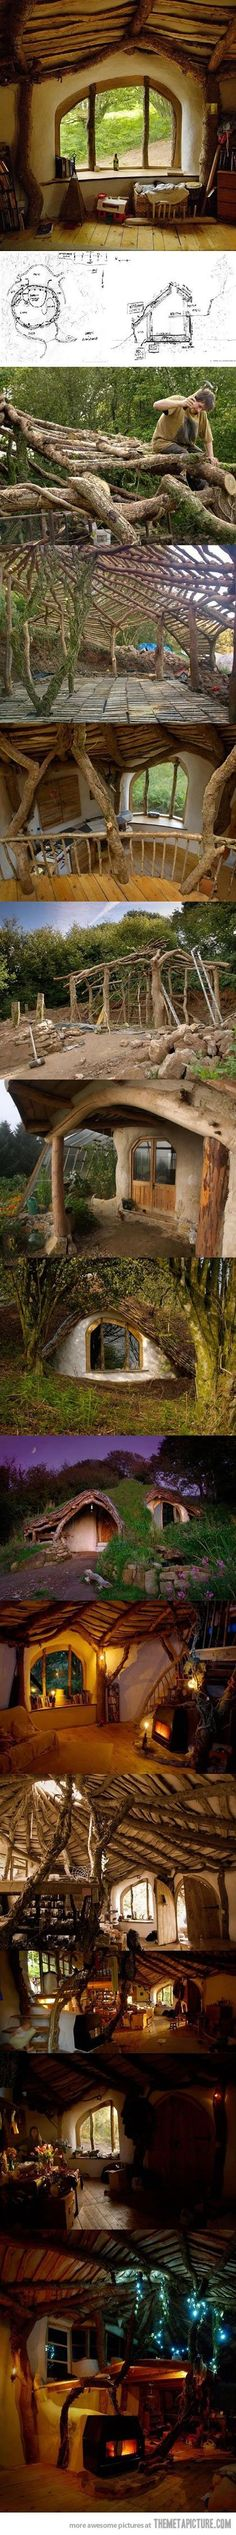 """How to build a Hobbit house :) would make an excellent """"backyard getaway"""" type deal! Have family sleepovers in there when it snows, for holidays, or just for fun!"""